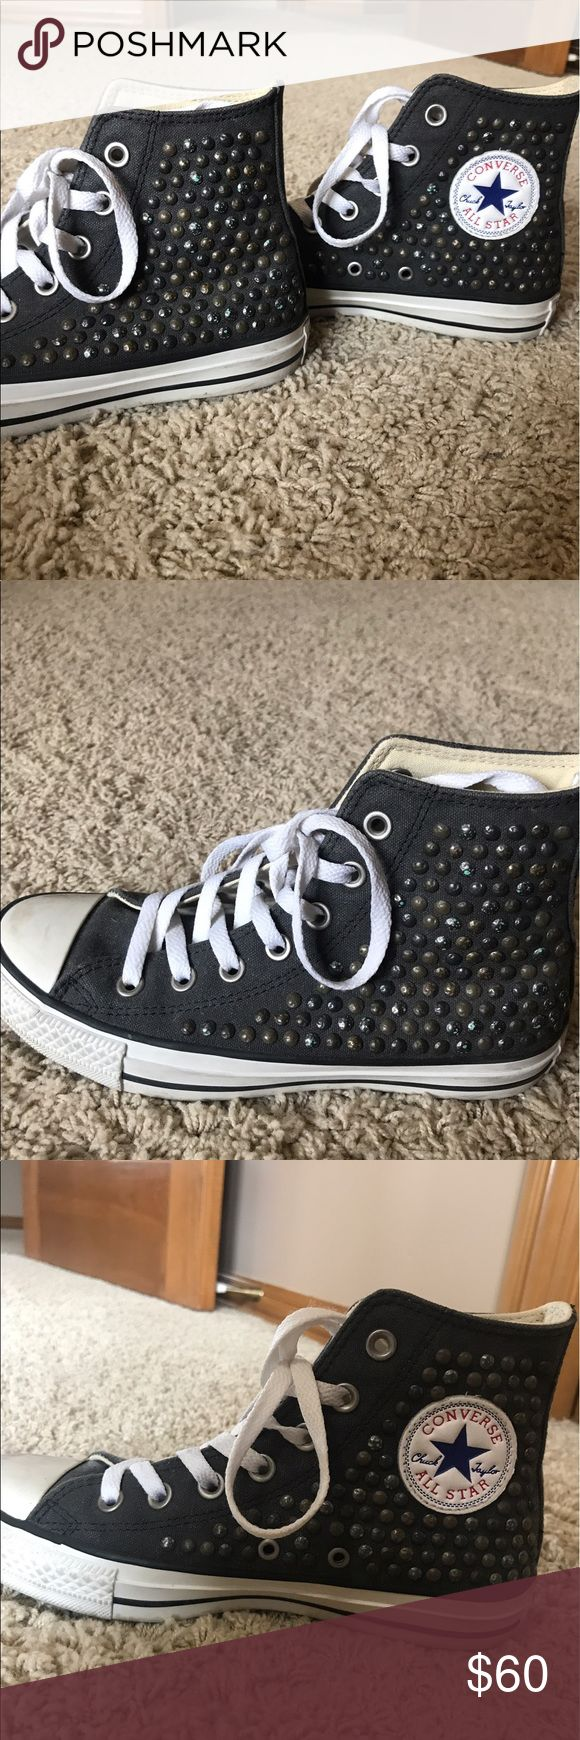 Converse (Free People) Studded Gray High Tops These were purchased for $100 on Free People. Converse brand high tops in size 6.5 women's (4.5 men's). I wore these two or three times. Make an offer! Converse Shoes Sneakers